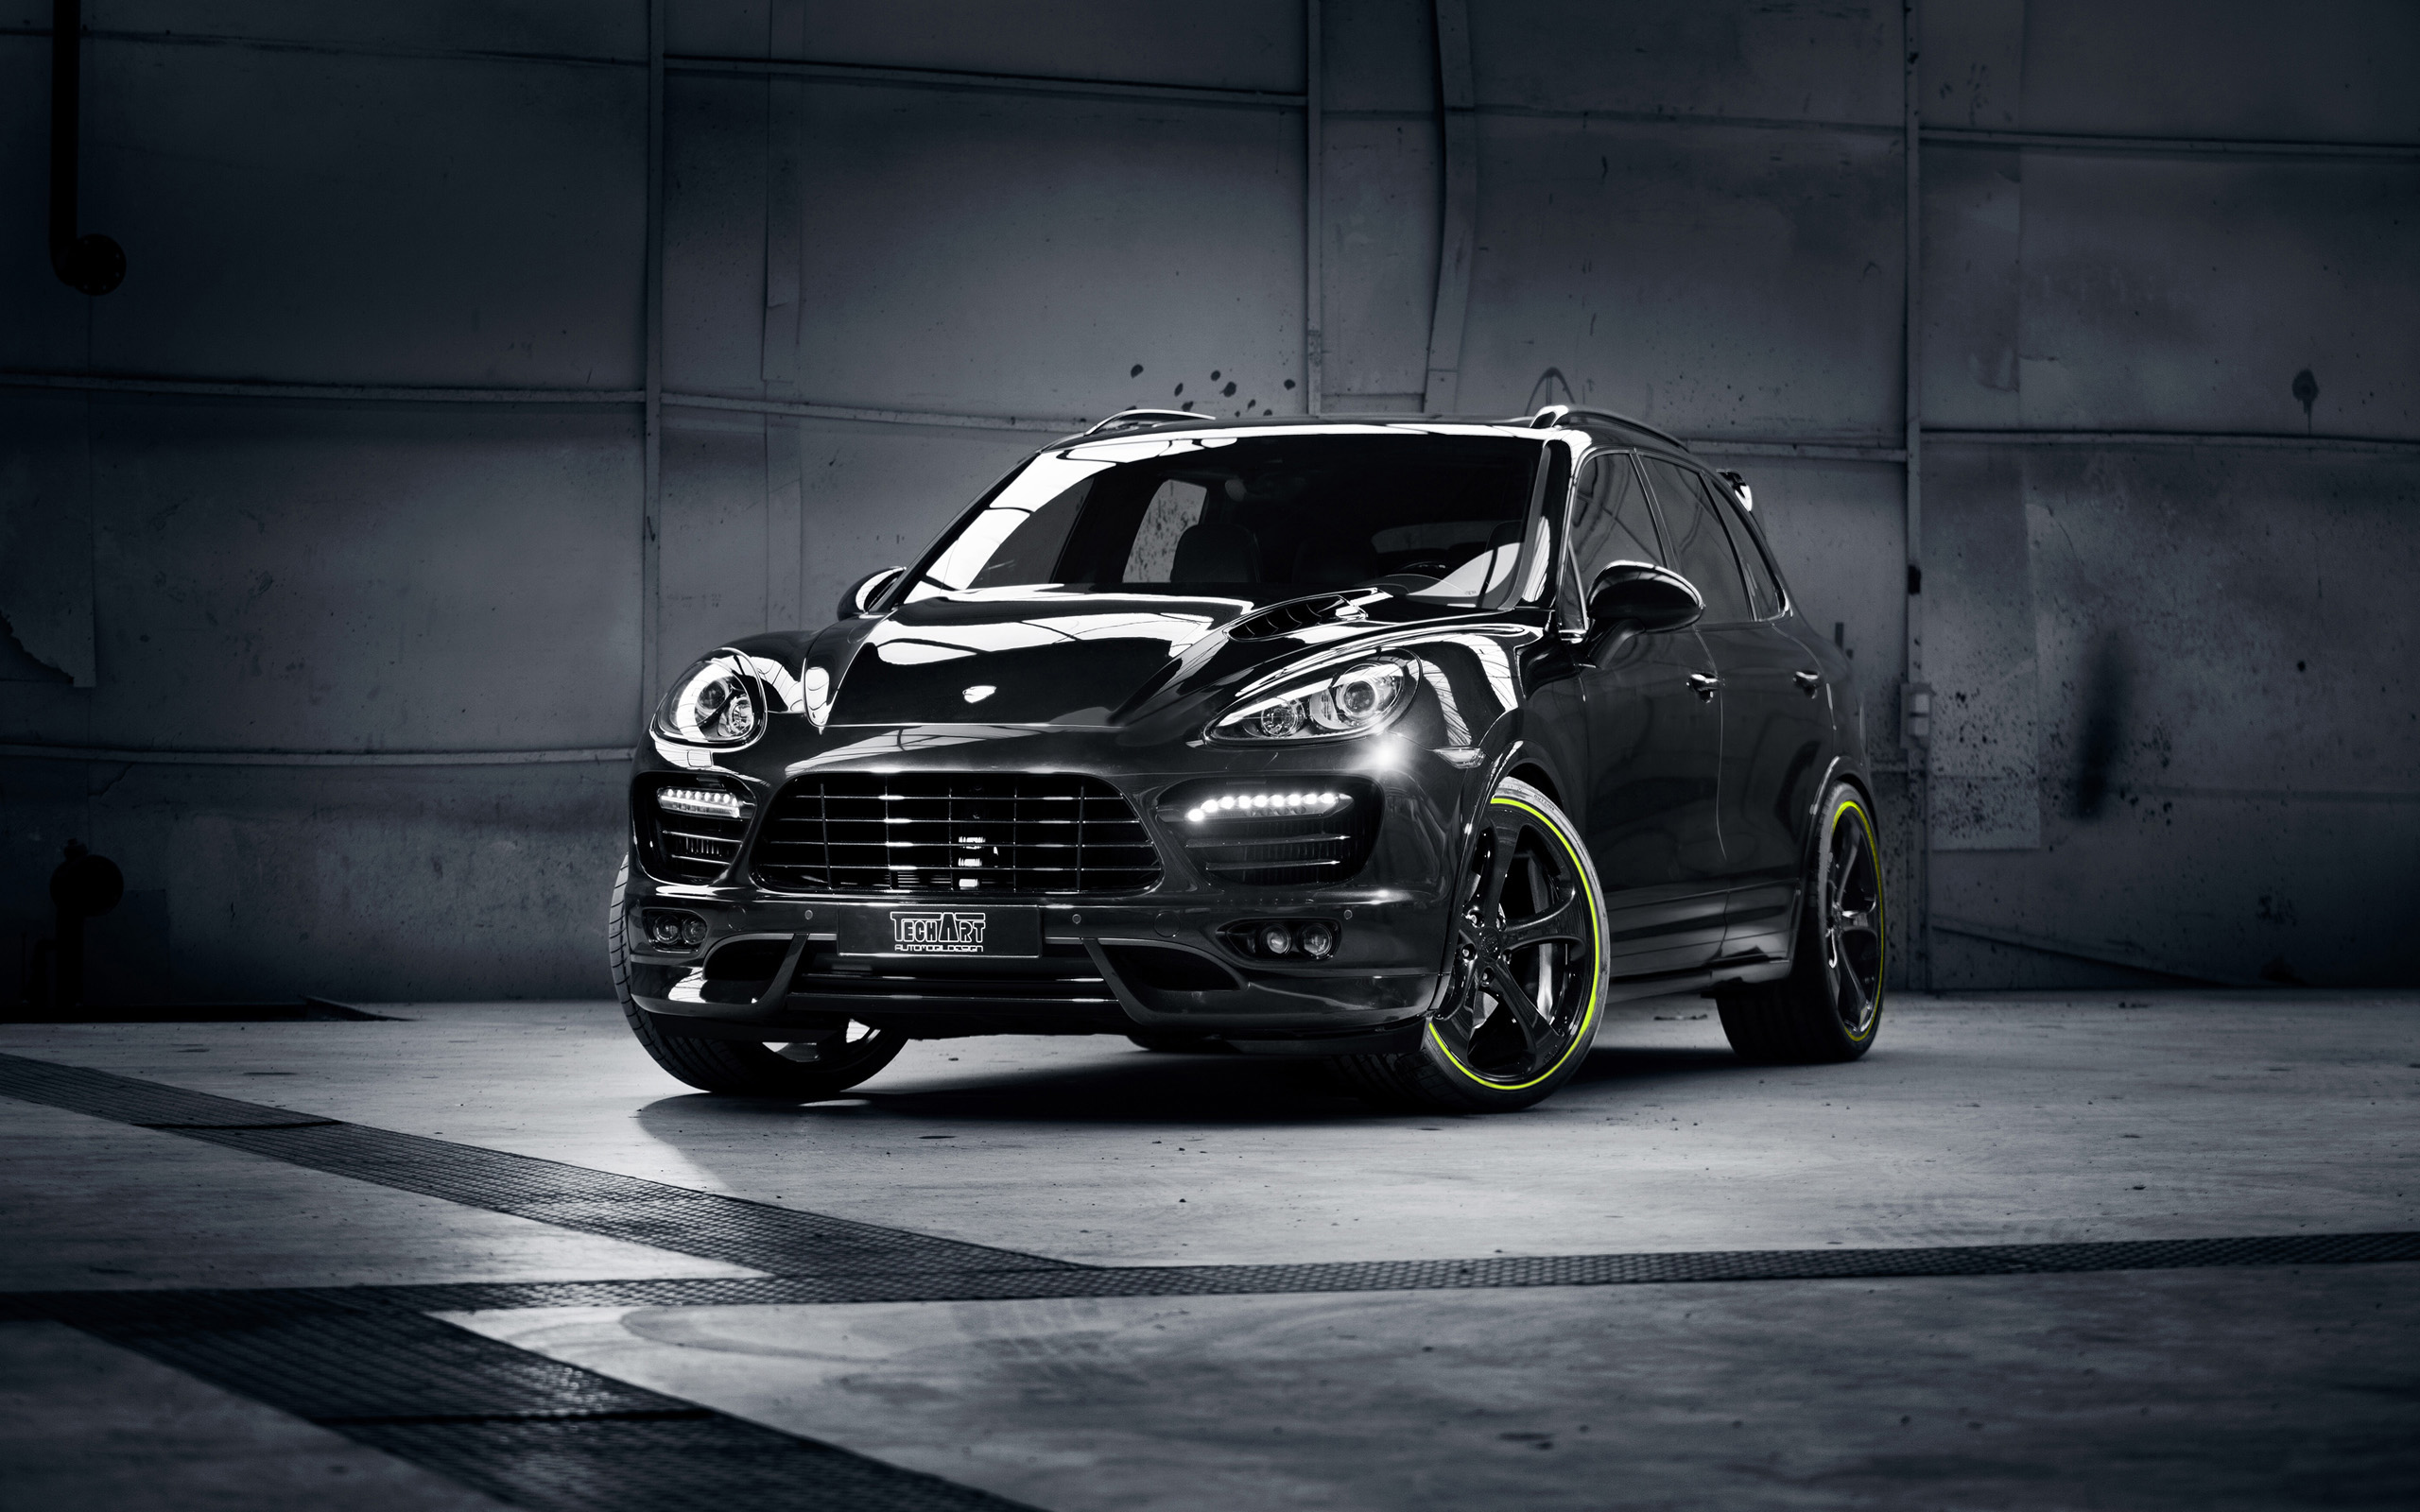 2013 porsche cayenne s diesel by techart wallpapers. Black Bedroom Furniture Sets. Home Design Ideas